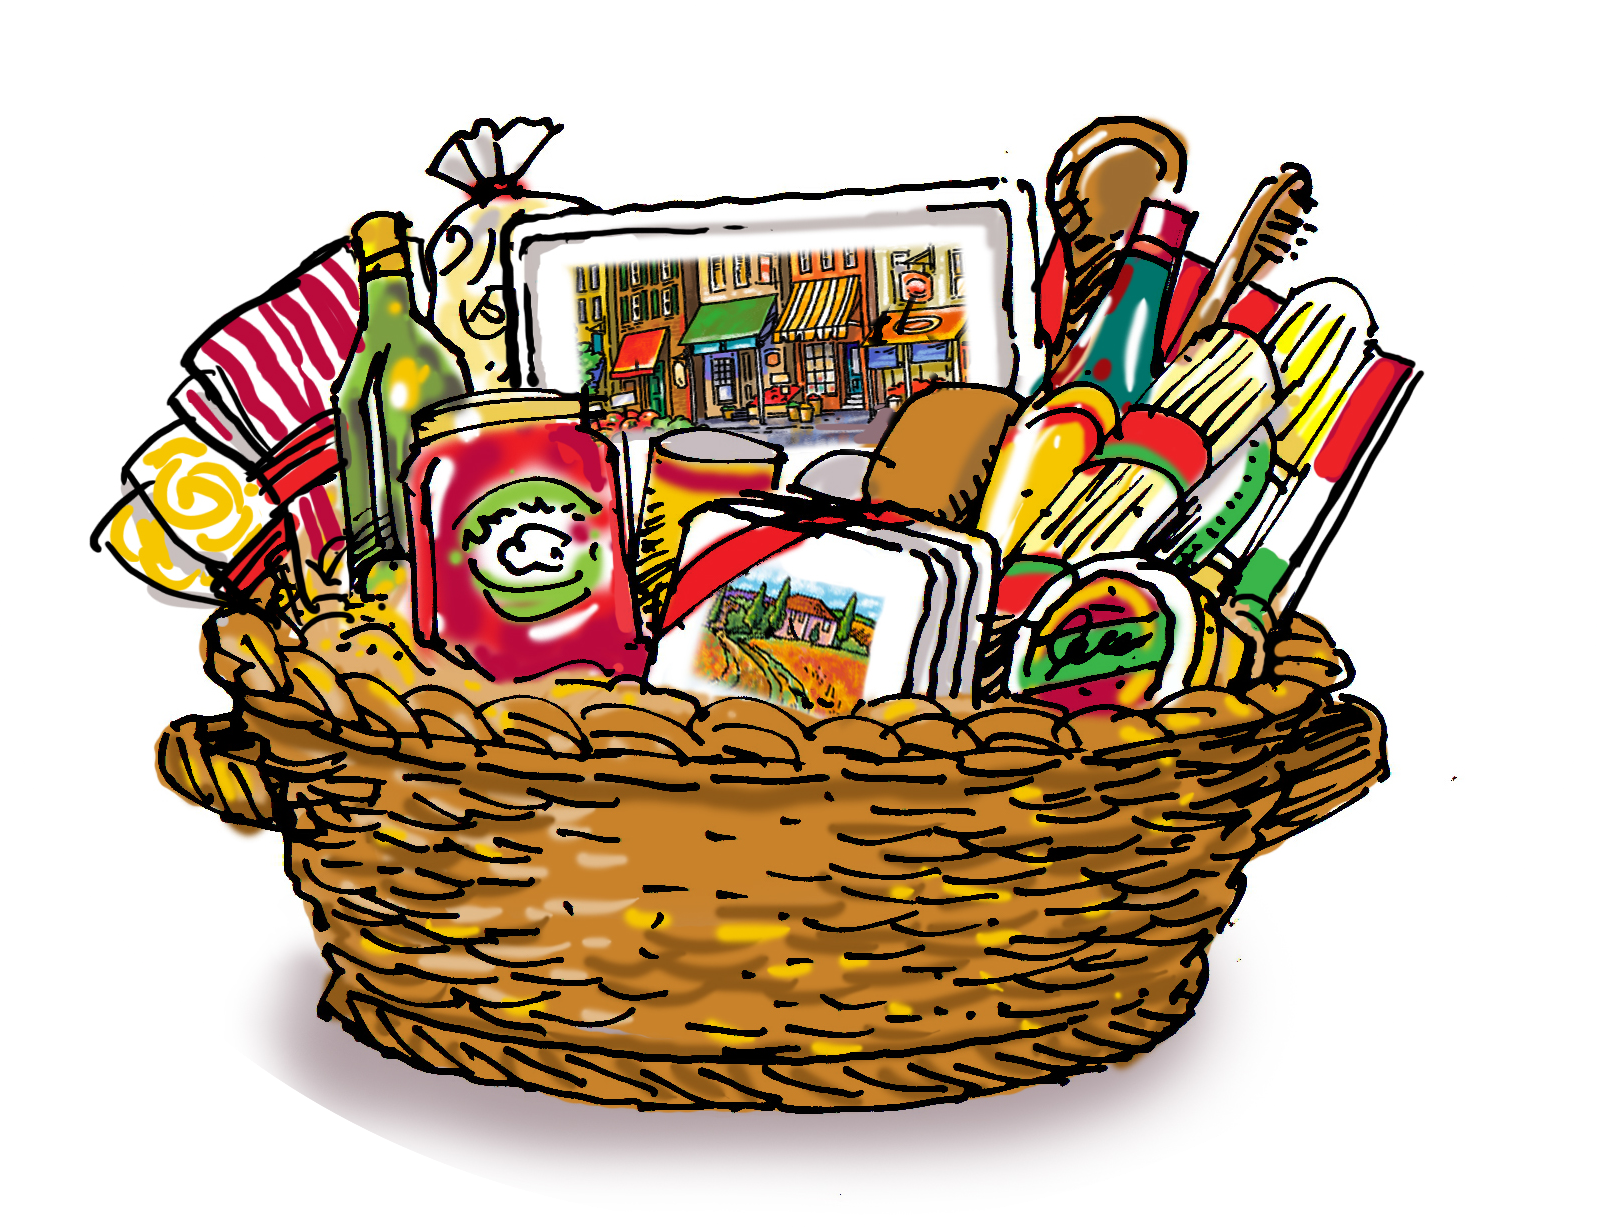 graphic black and white download Put in hamper clipart. You could win a.